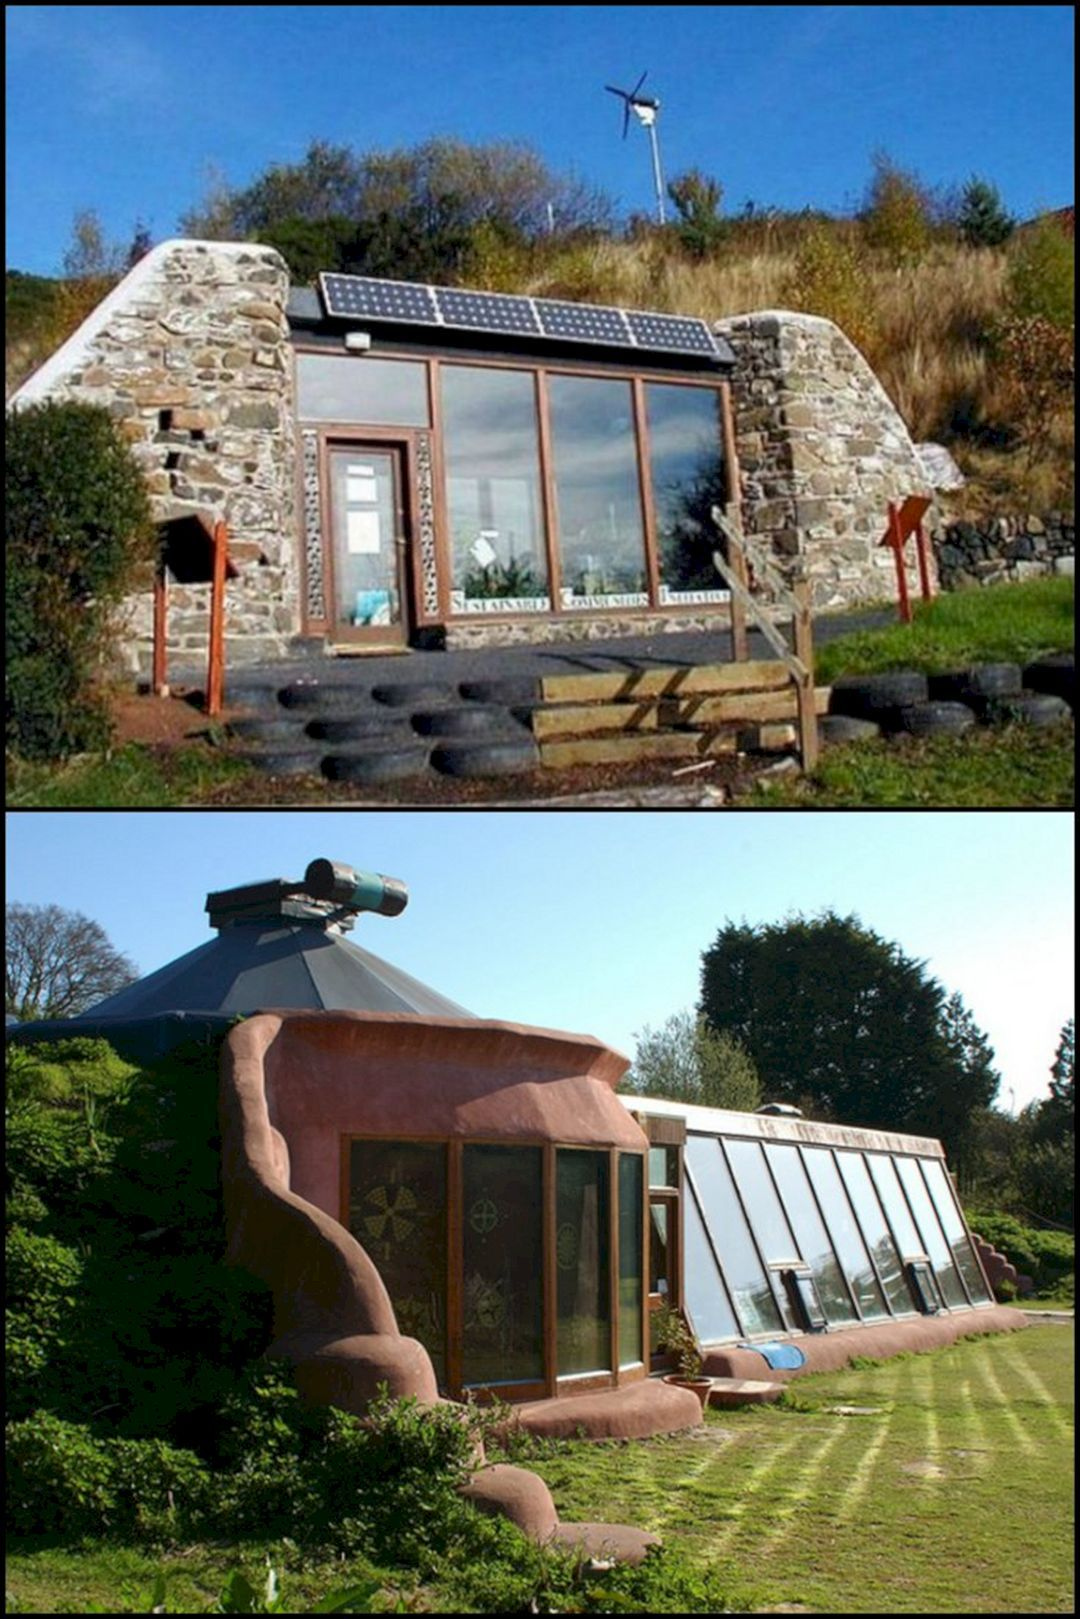 Earthship plans and designs pictures - 40 Extraordinary Earthship Homes Design Ideas